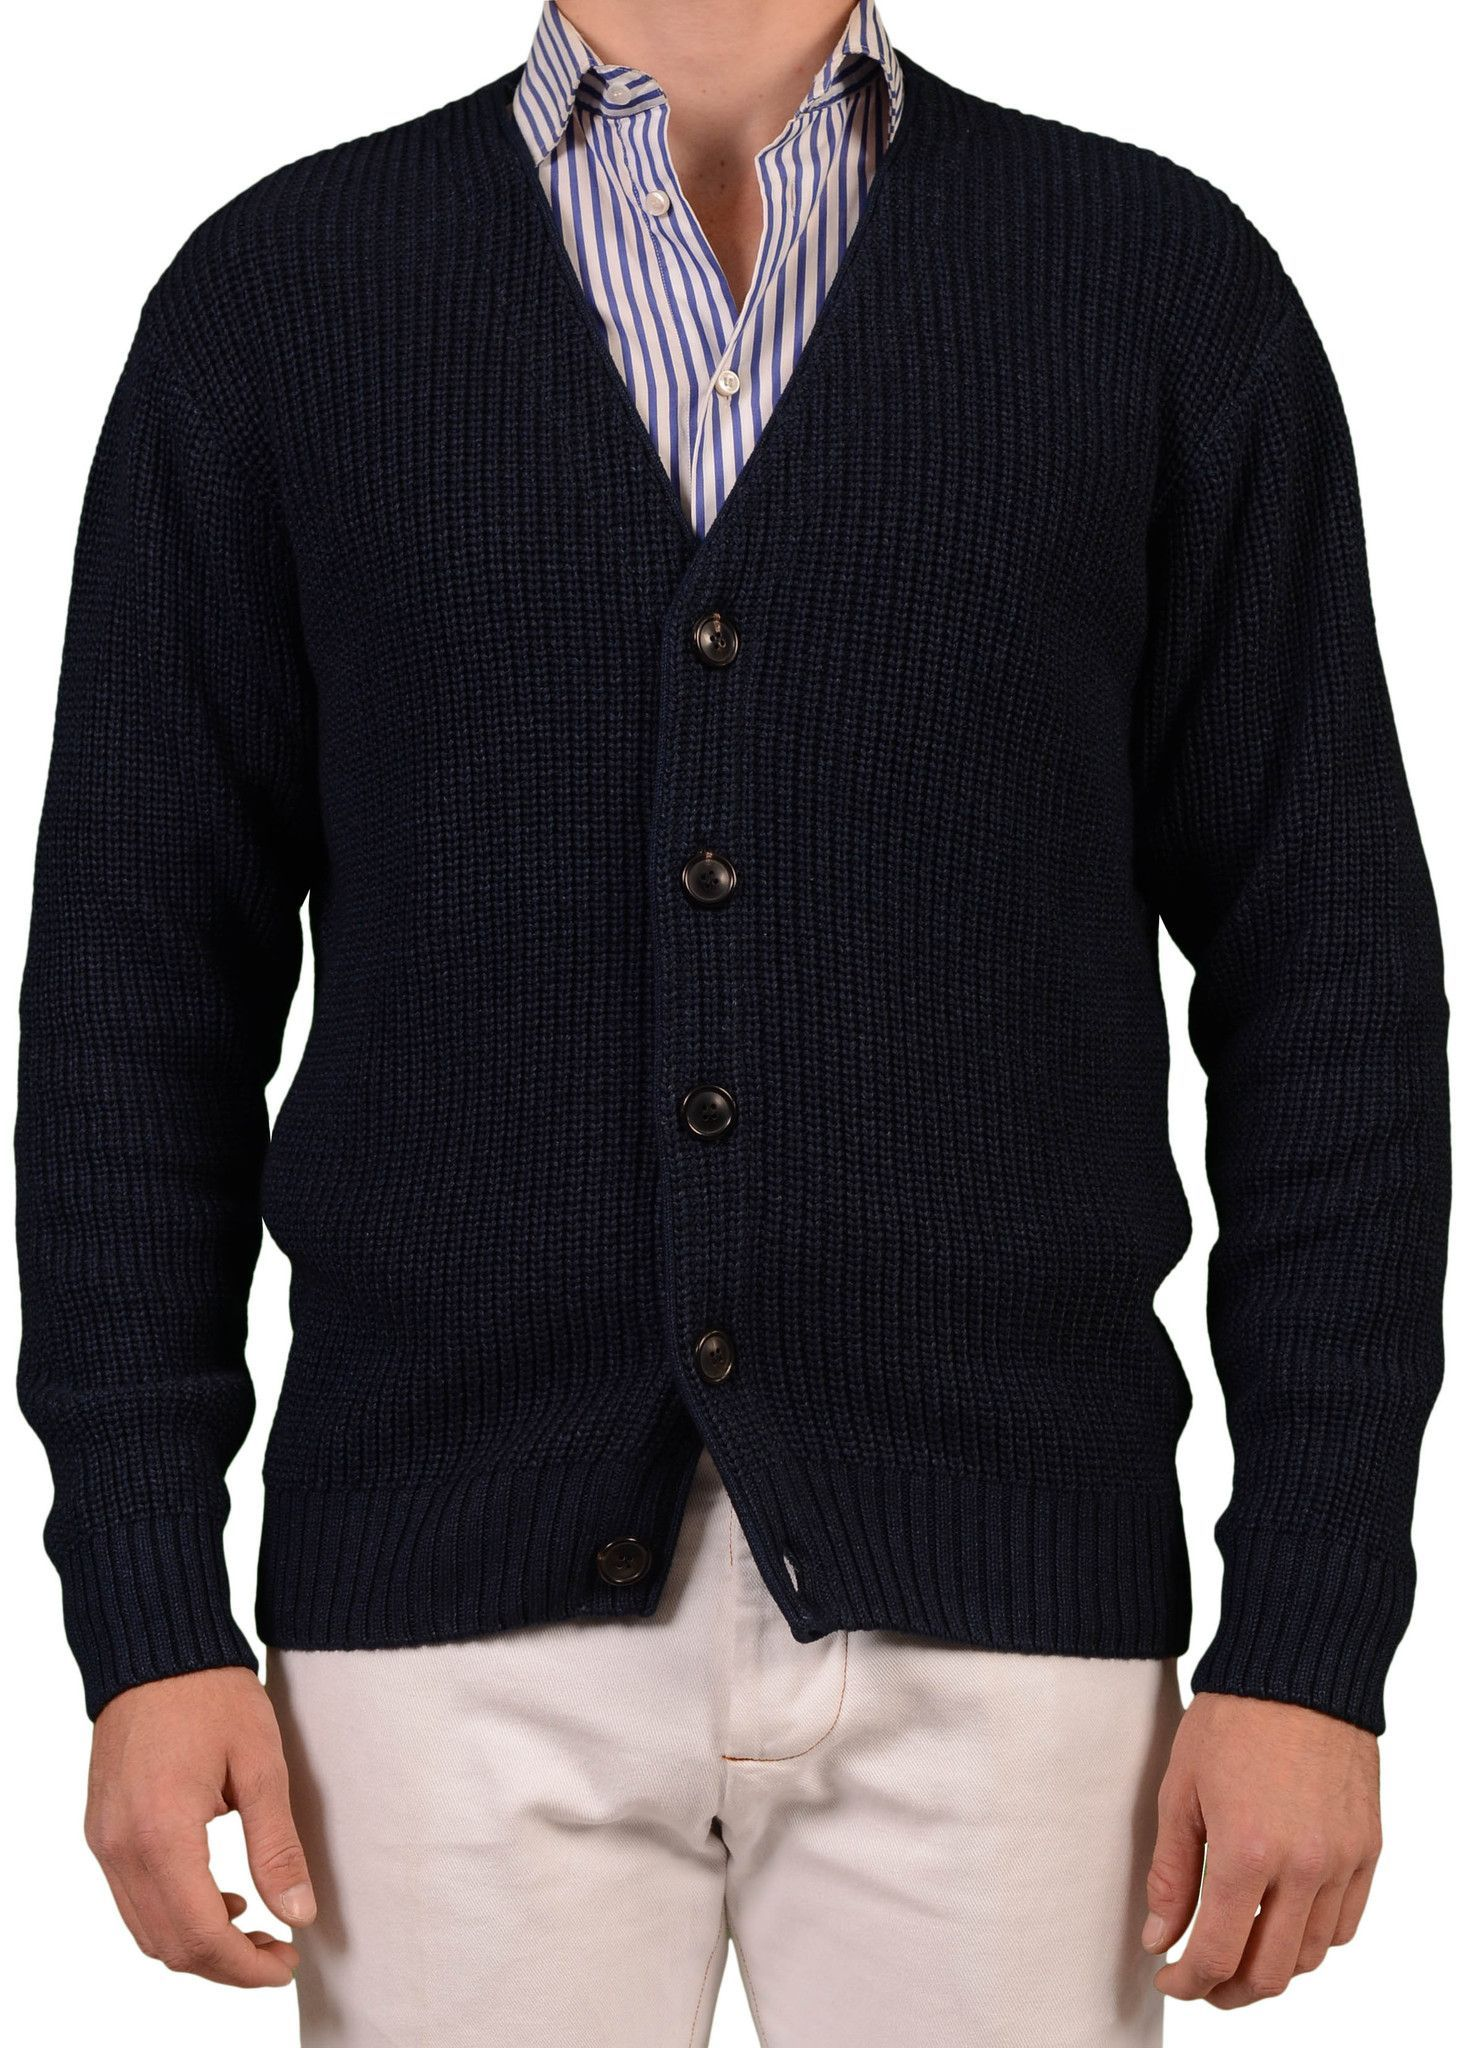 OUR LEGACY SS14 Navy Blue Cotton Knit Cardigan Sweater US M NEW EU ...